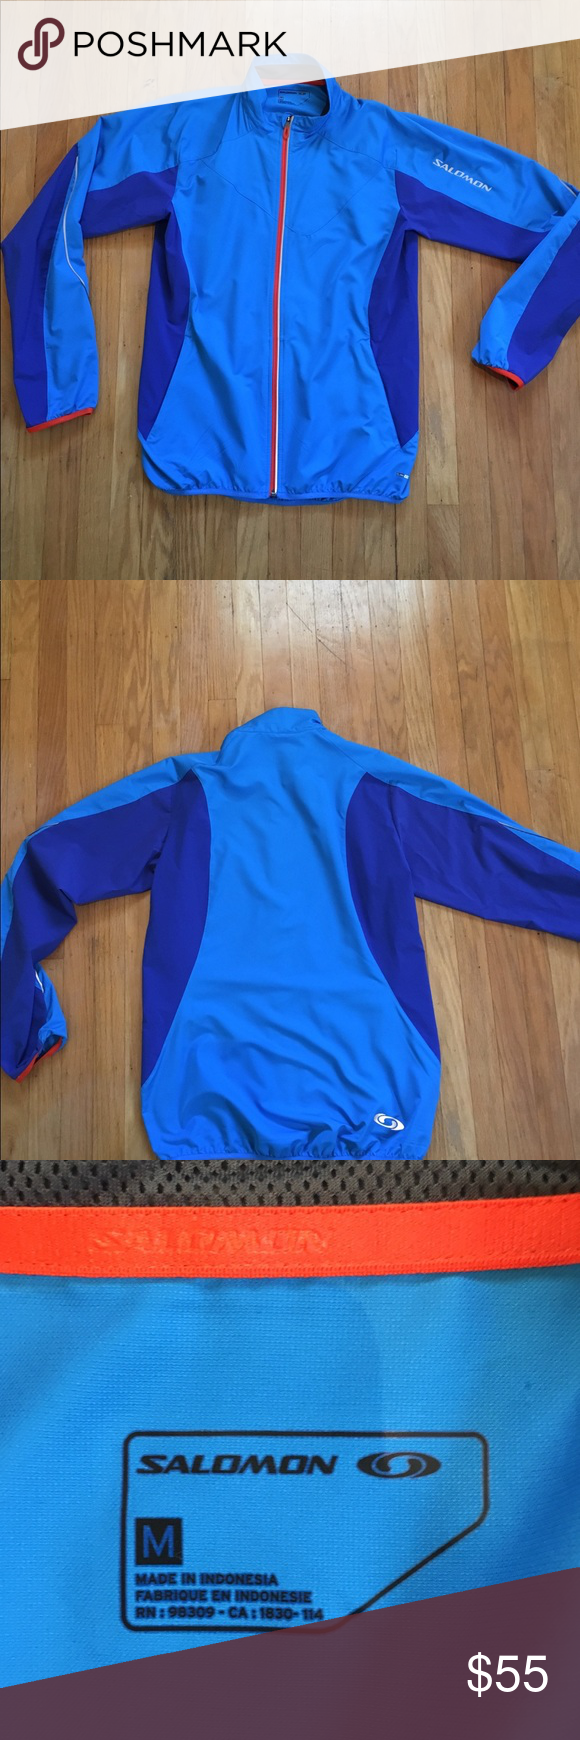 1d9ee33f96 Salomon lightweight running jacket Brand new without tags, men's size  medium Salomon lightweight running jacket. Reflective logos front & back  and on ...